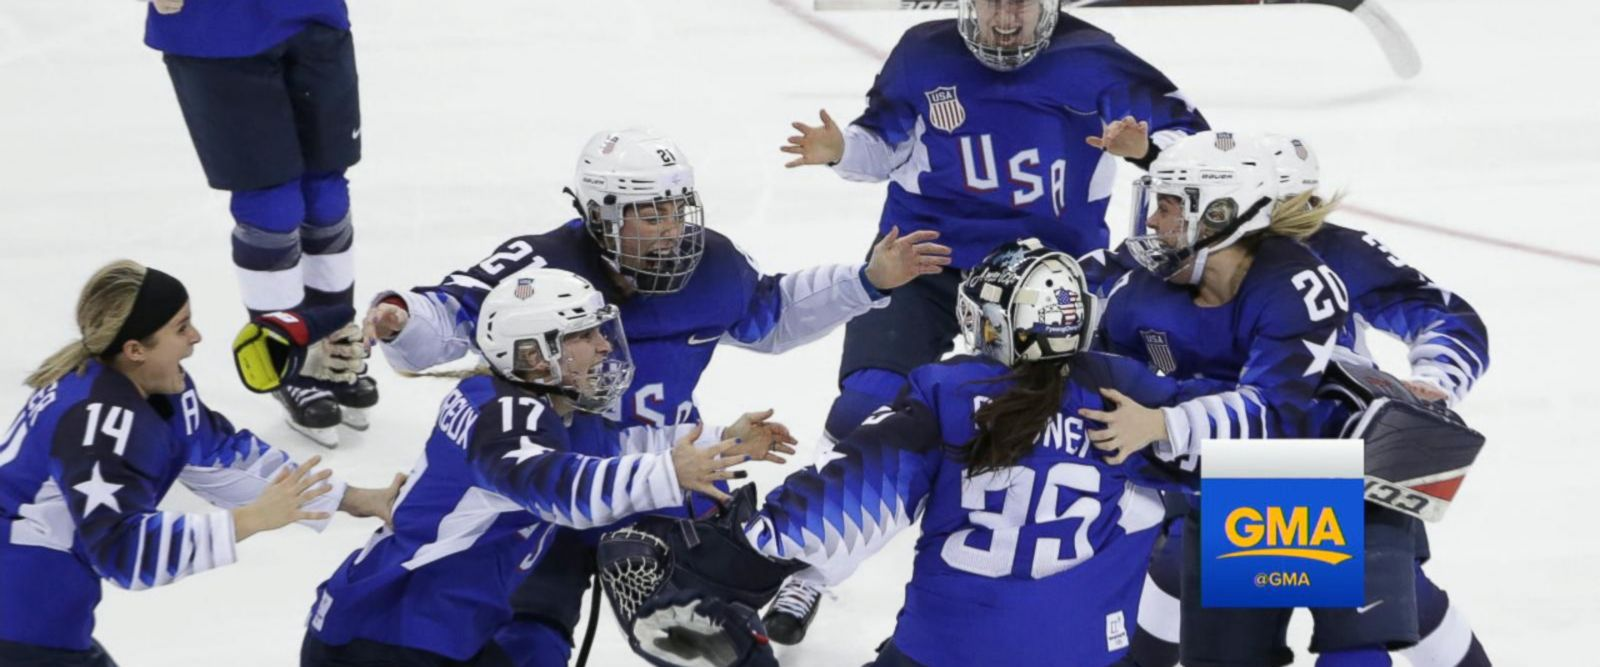 VIDEO: US wins Olympic gold in women's hockey